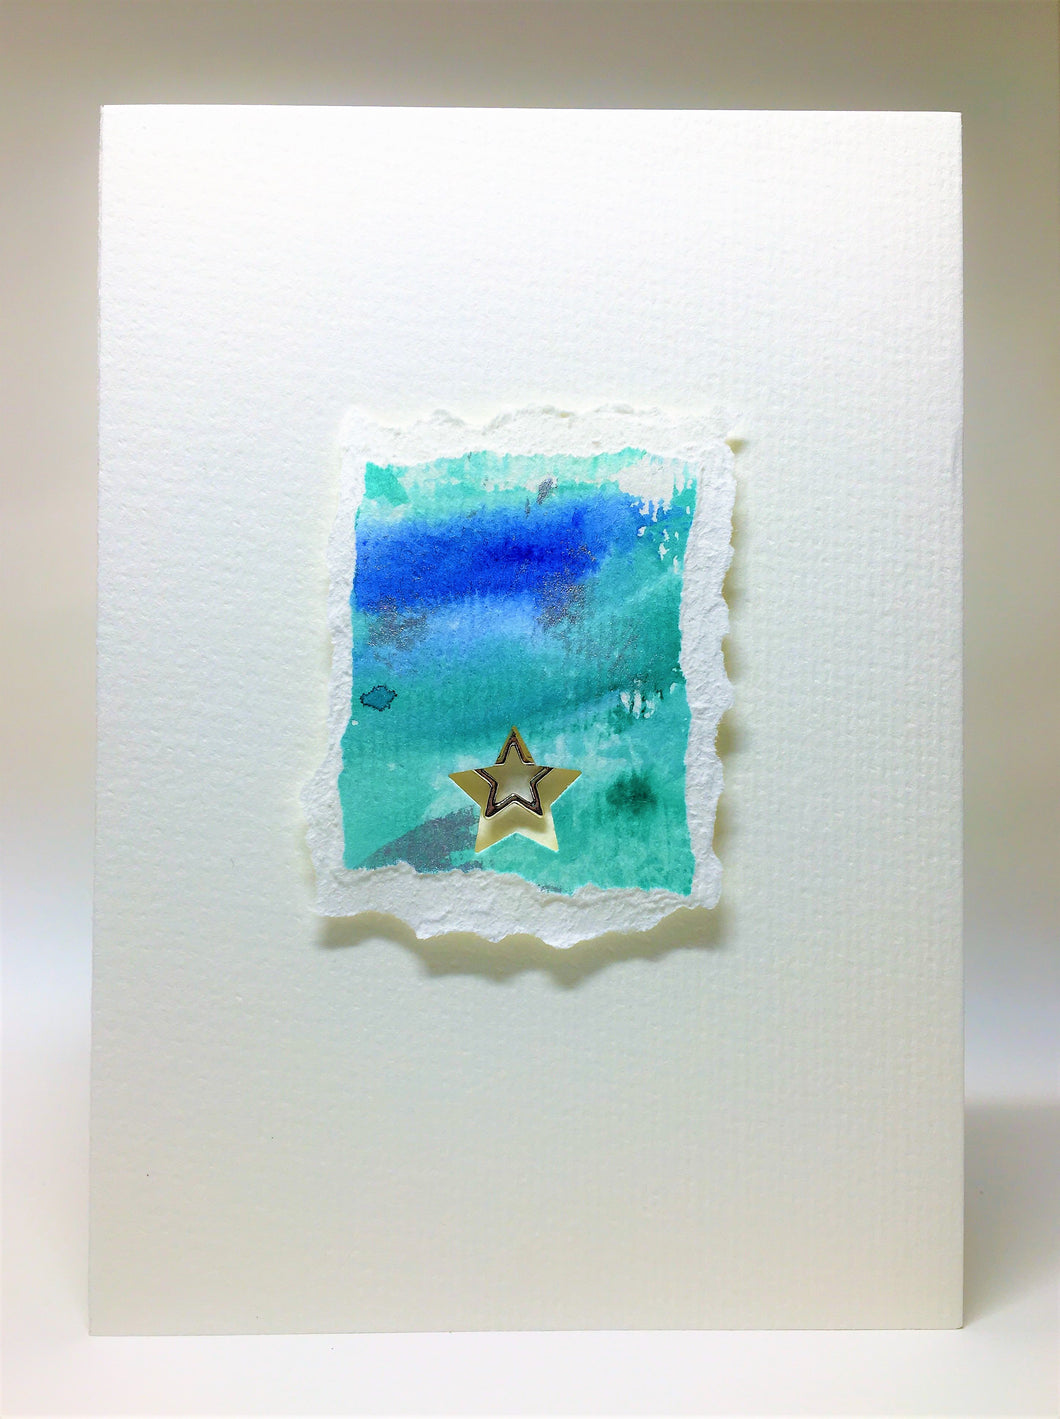 Original Handcrafted Christmas Card - Star Collection - Jade, Blue and Silver with Star - eDgE dEsiGn London